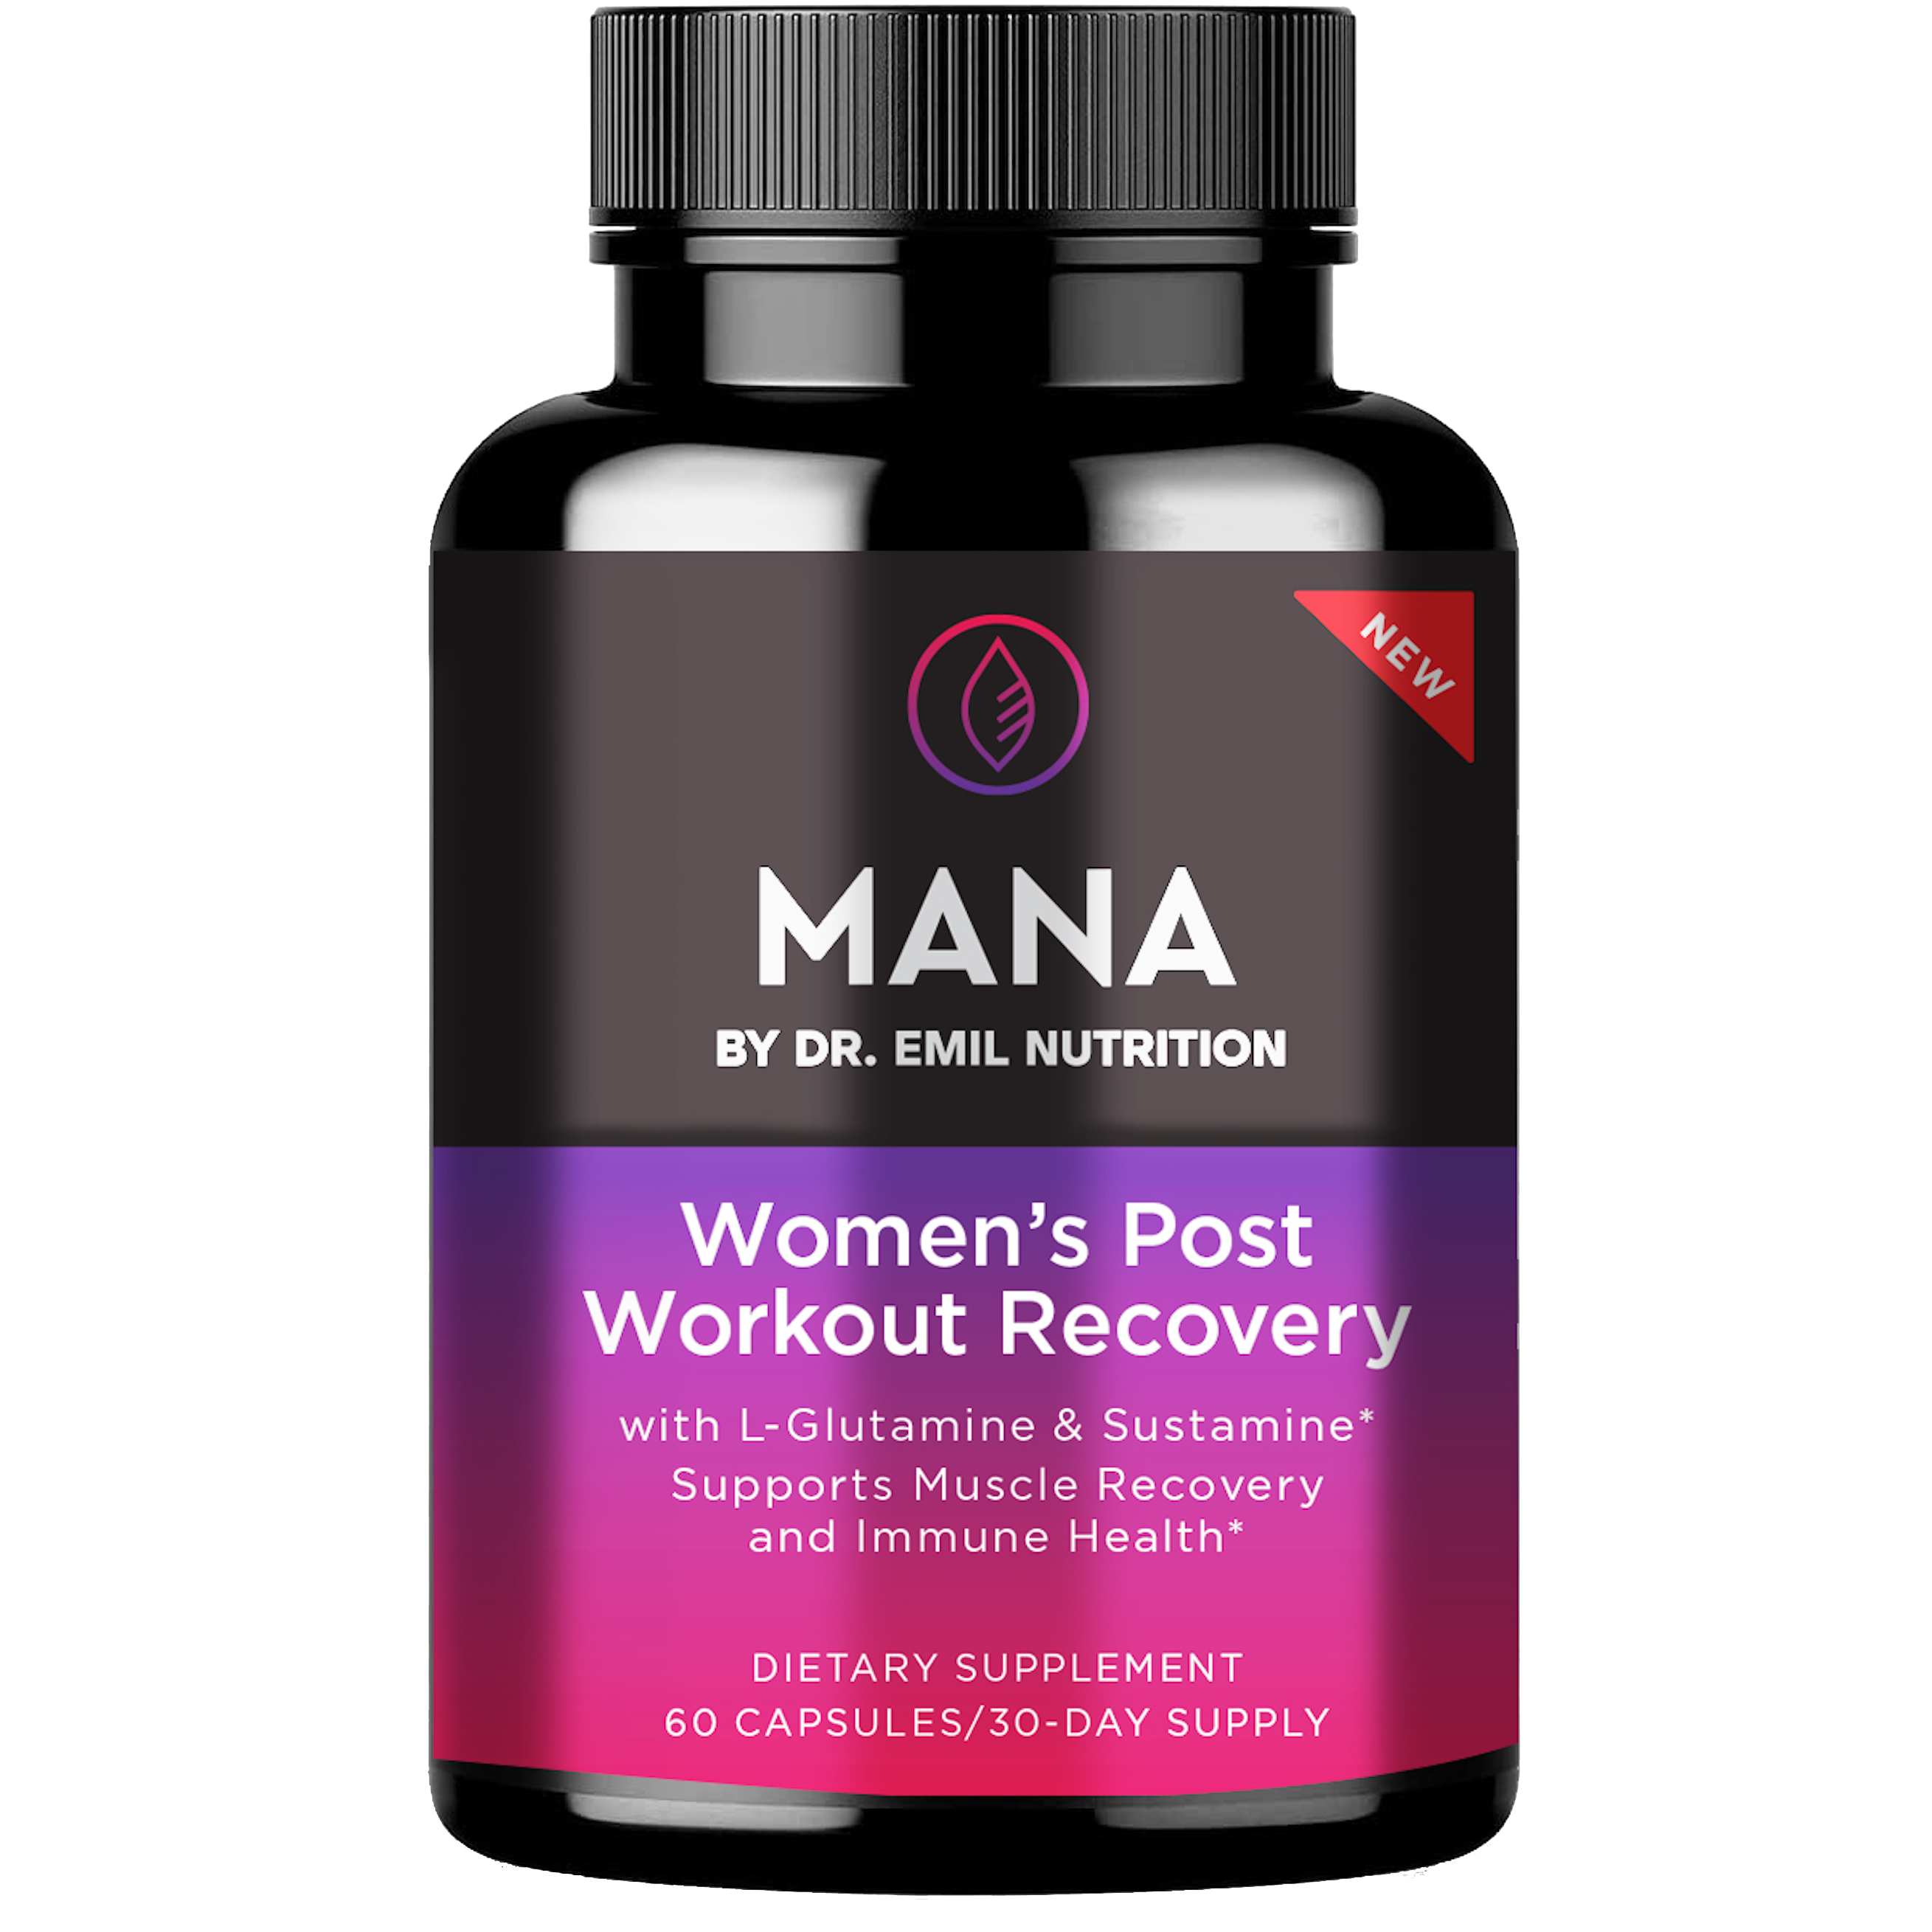 A bottle of Dr. Emil's Women's Post Workout Recovery Capsule.